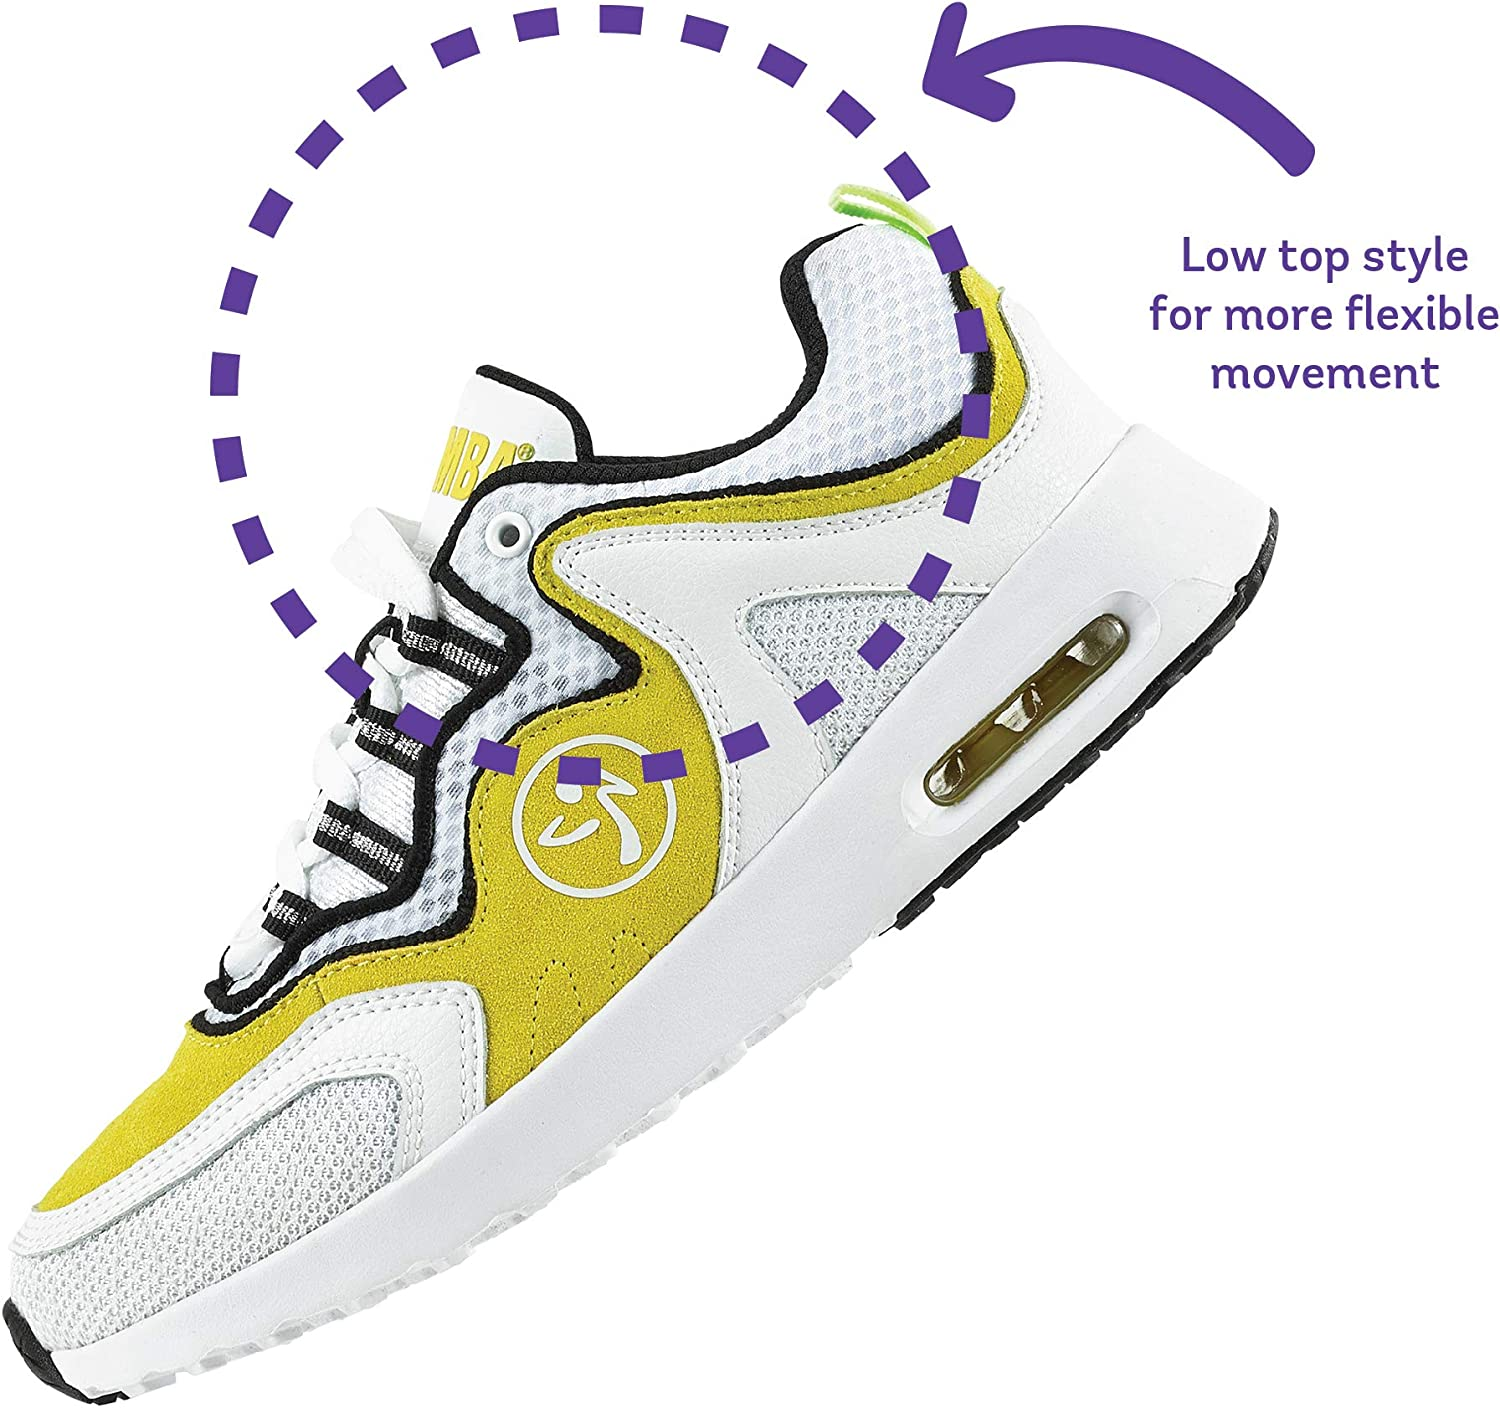 Zumba Athletic Air Classic Gym Fitness Sneakers Dance Workout Shoes for Women Yellow hsz5yn